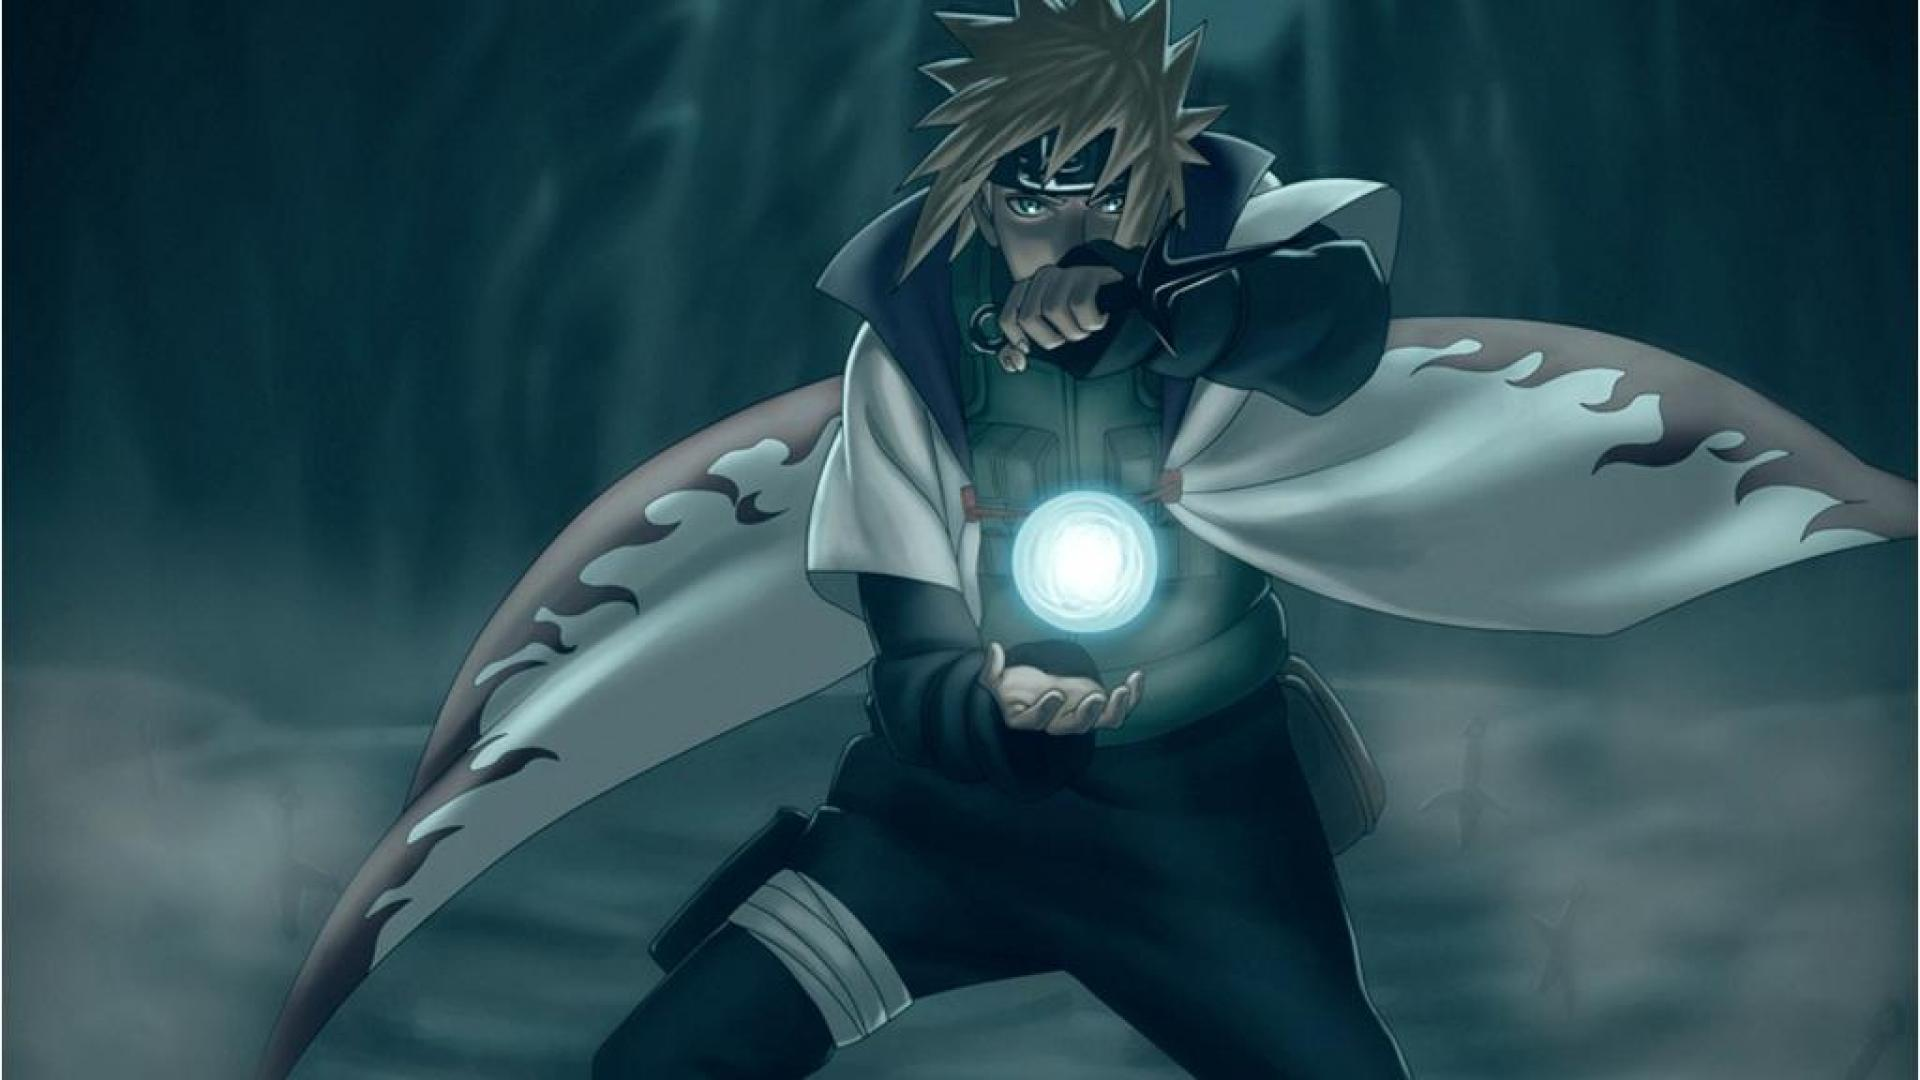 naruto hd wallpapers for windows 7